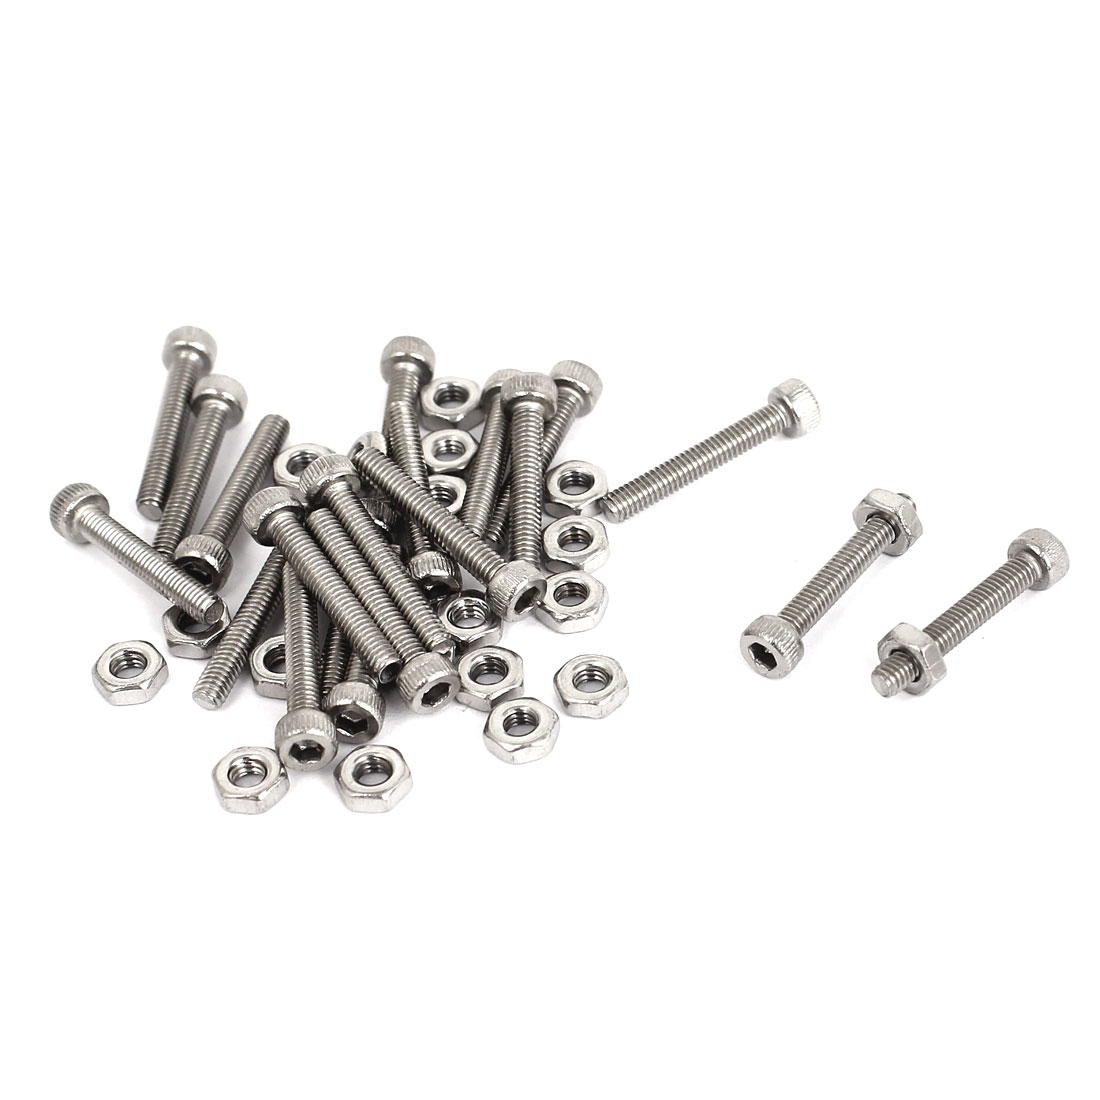 M2.5x16mm Stainless Steel Hex Socket Head Knurled Cap Screws Bolts Nut Set 20Pcs